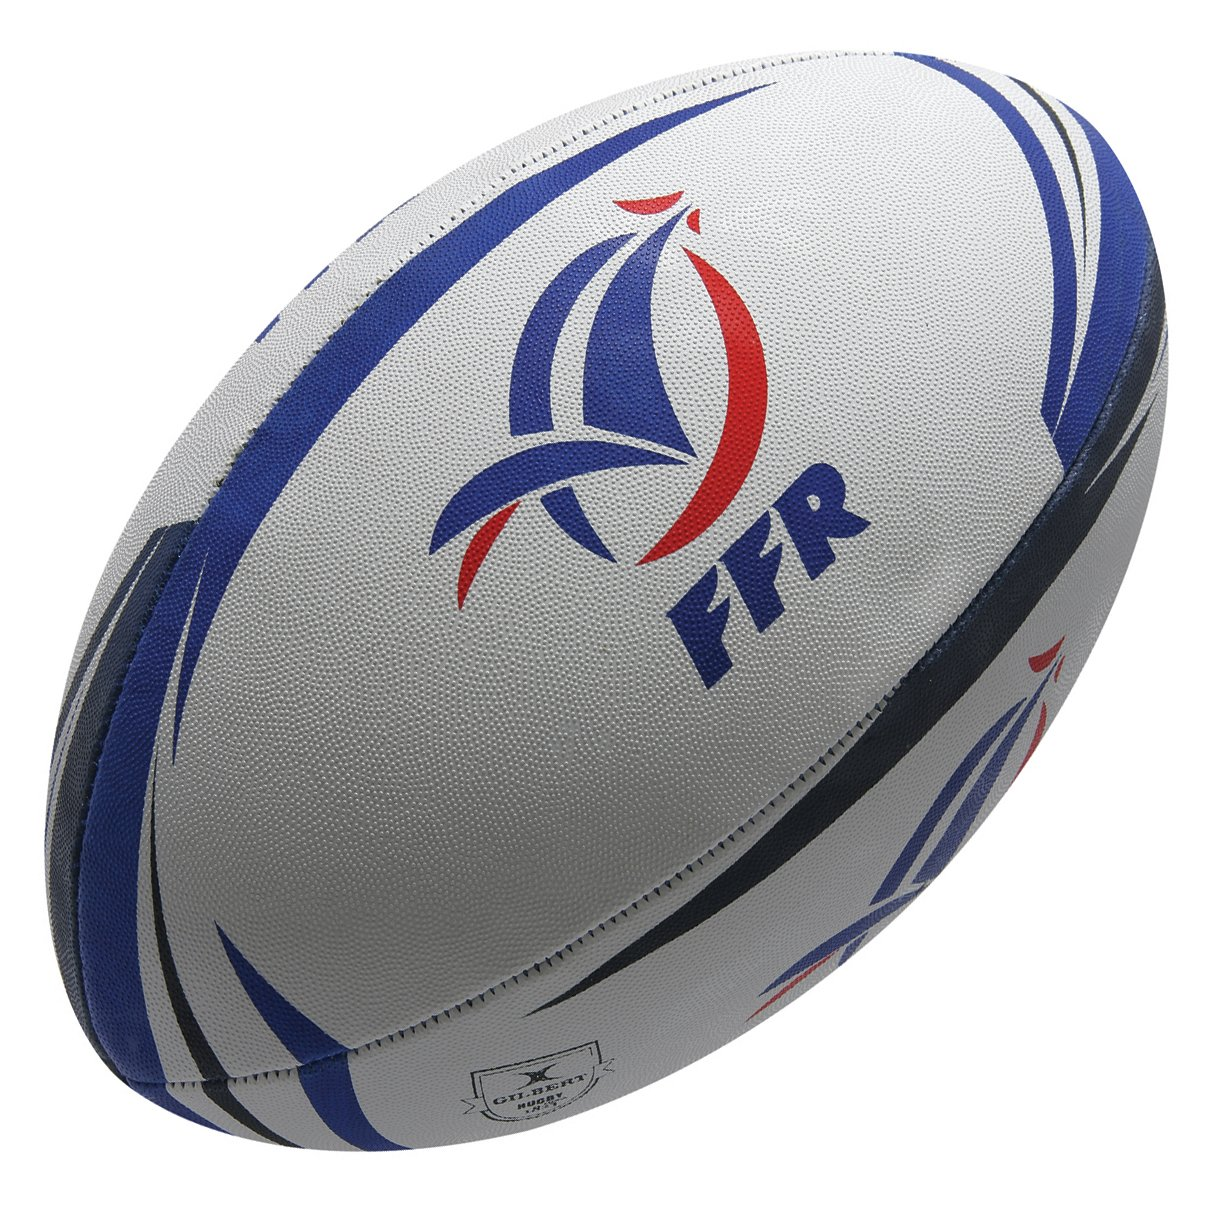 Gilbert France - Ballon de Rugby Réplique Officiel - Blanc/Bleu Marine Multicolore taille 5 Grays GIL027-FRC